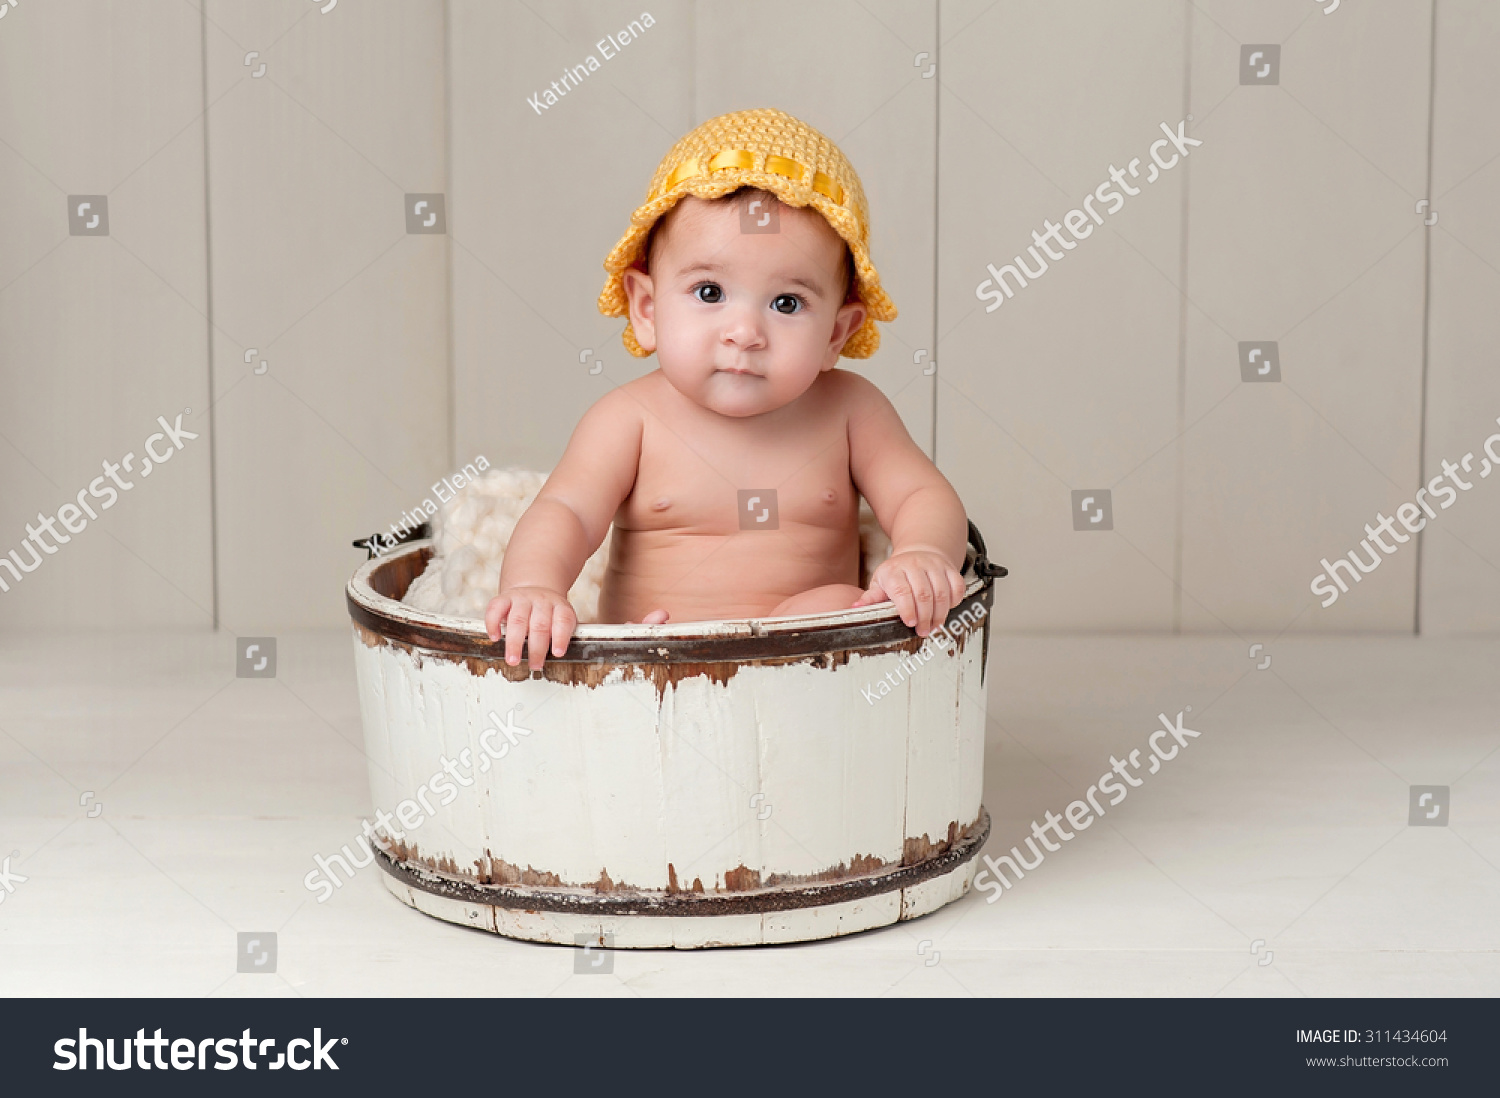 A 6 Month Old Baby Girl Wearing Yellow Knitted Hat And Sitting In Vintage